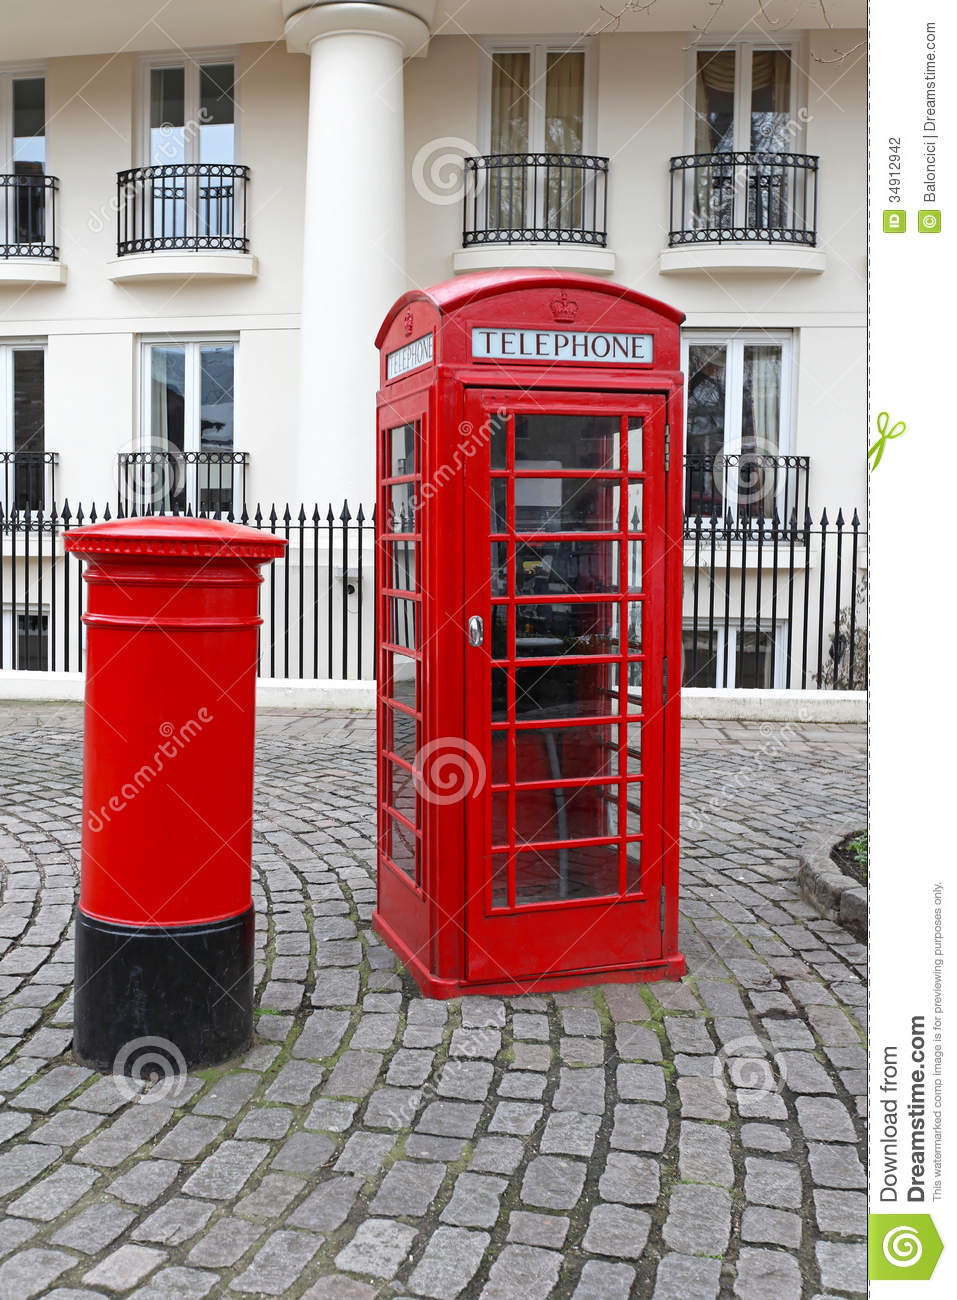 telephone and post box stock photography image 34912942 photo booth clipart photo booth clip art images